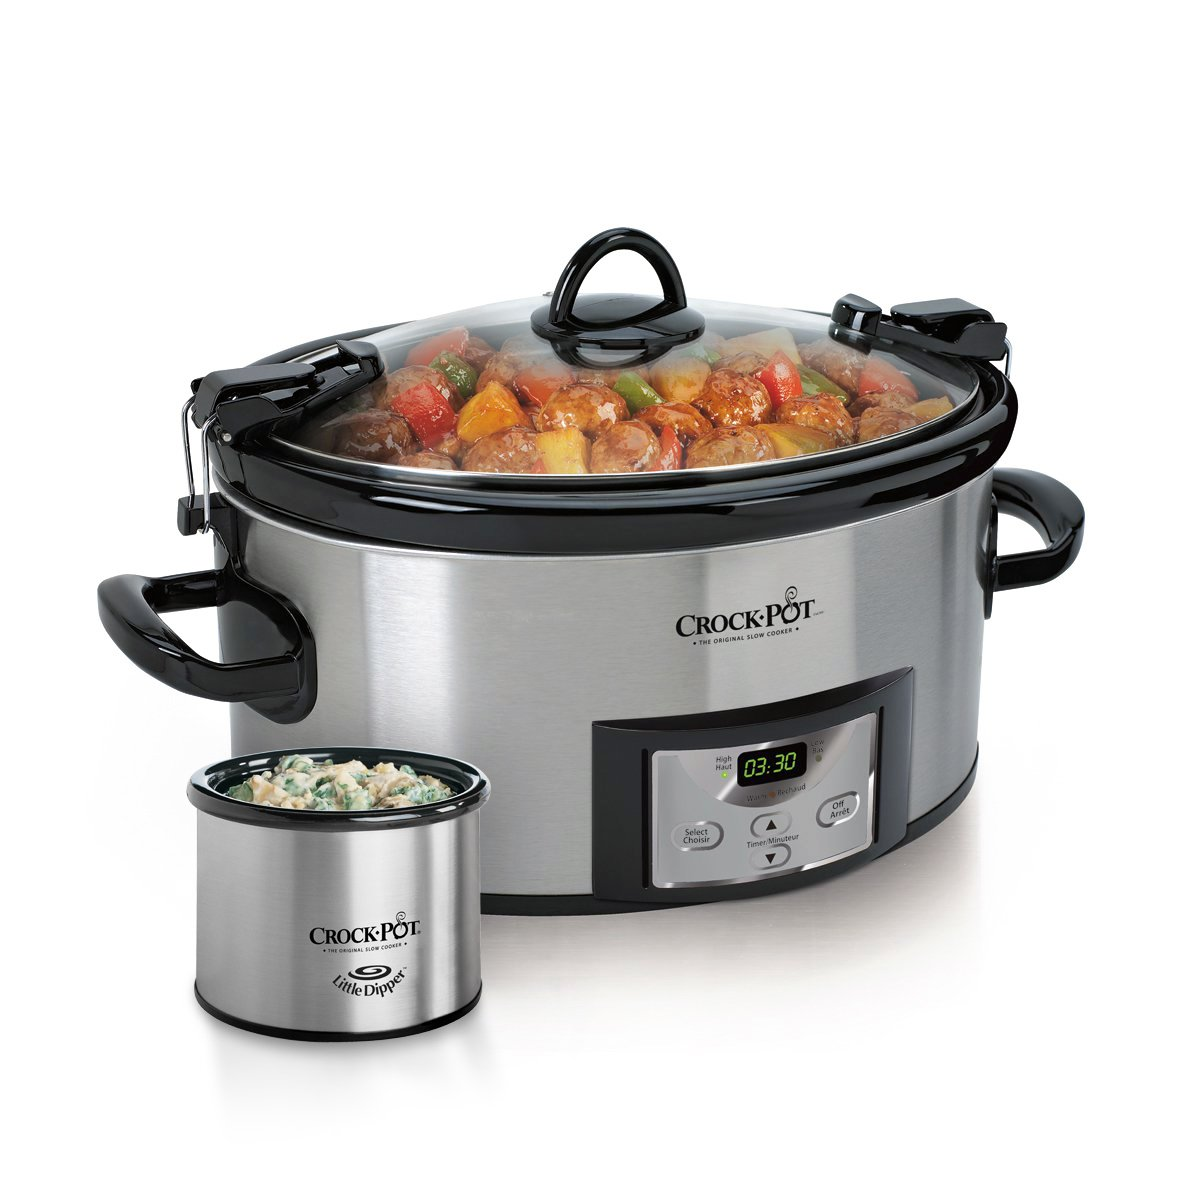 Crock-pot SCCPVL619-S-A 6-Quart Metallic Cooker with Hinged Lid, Black